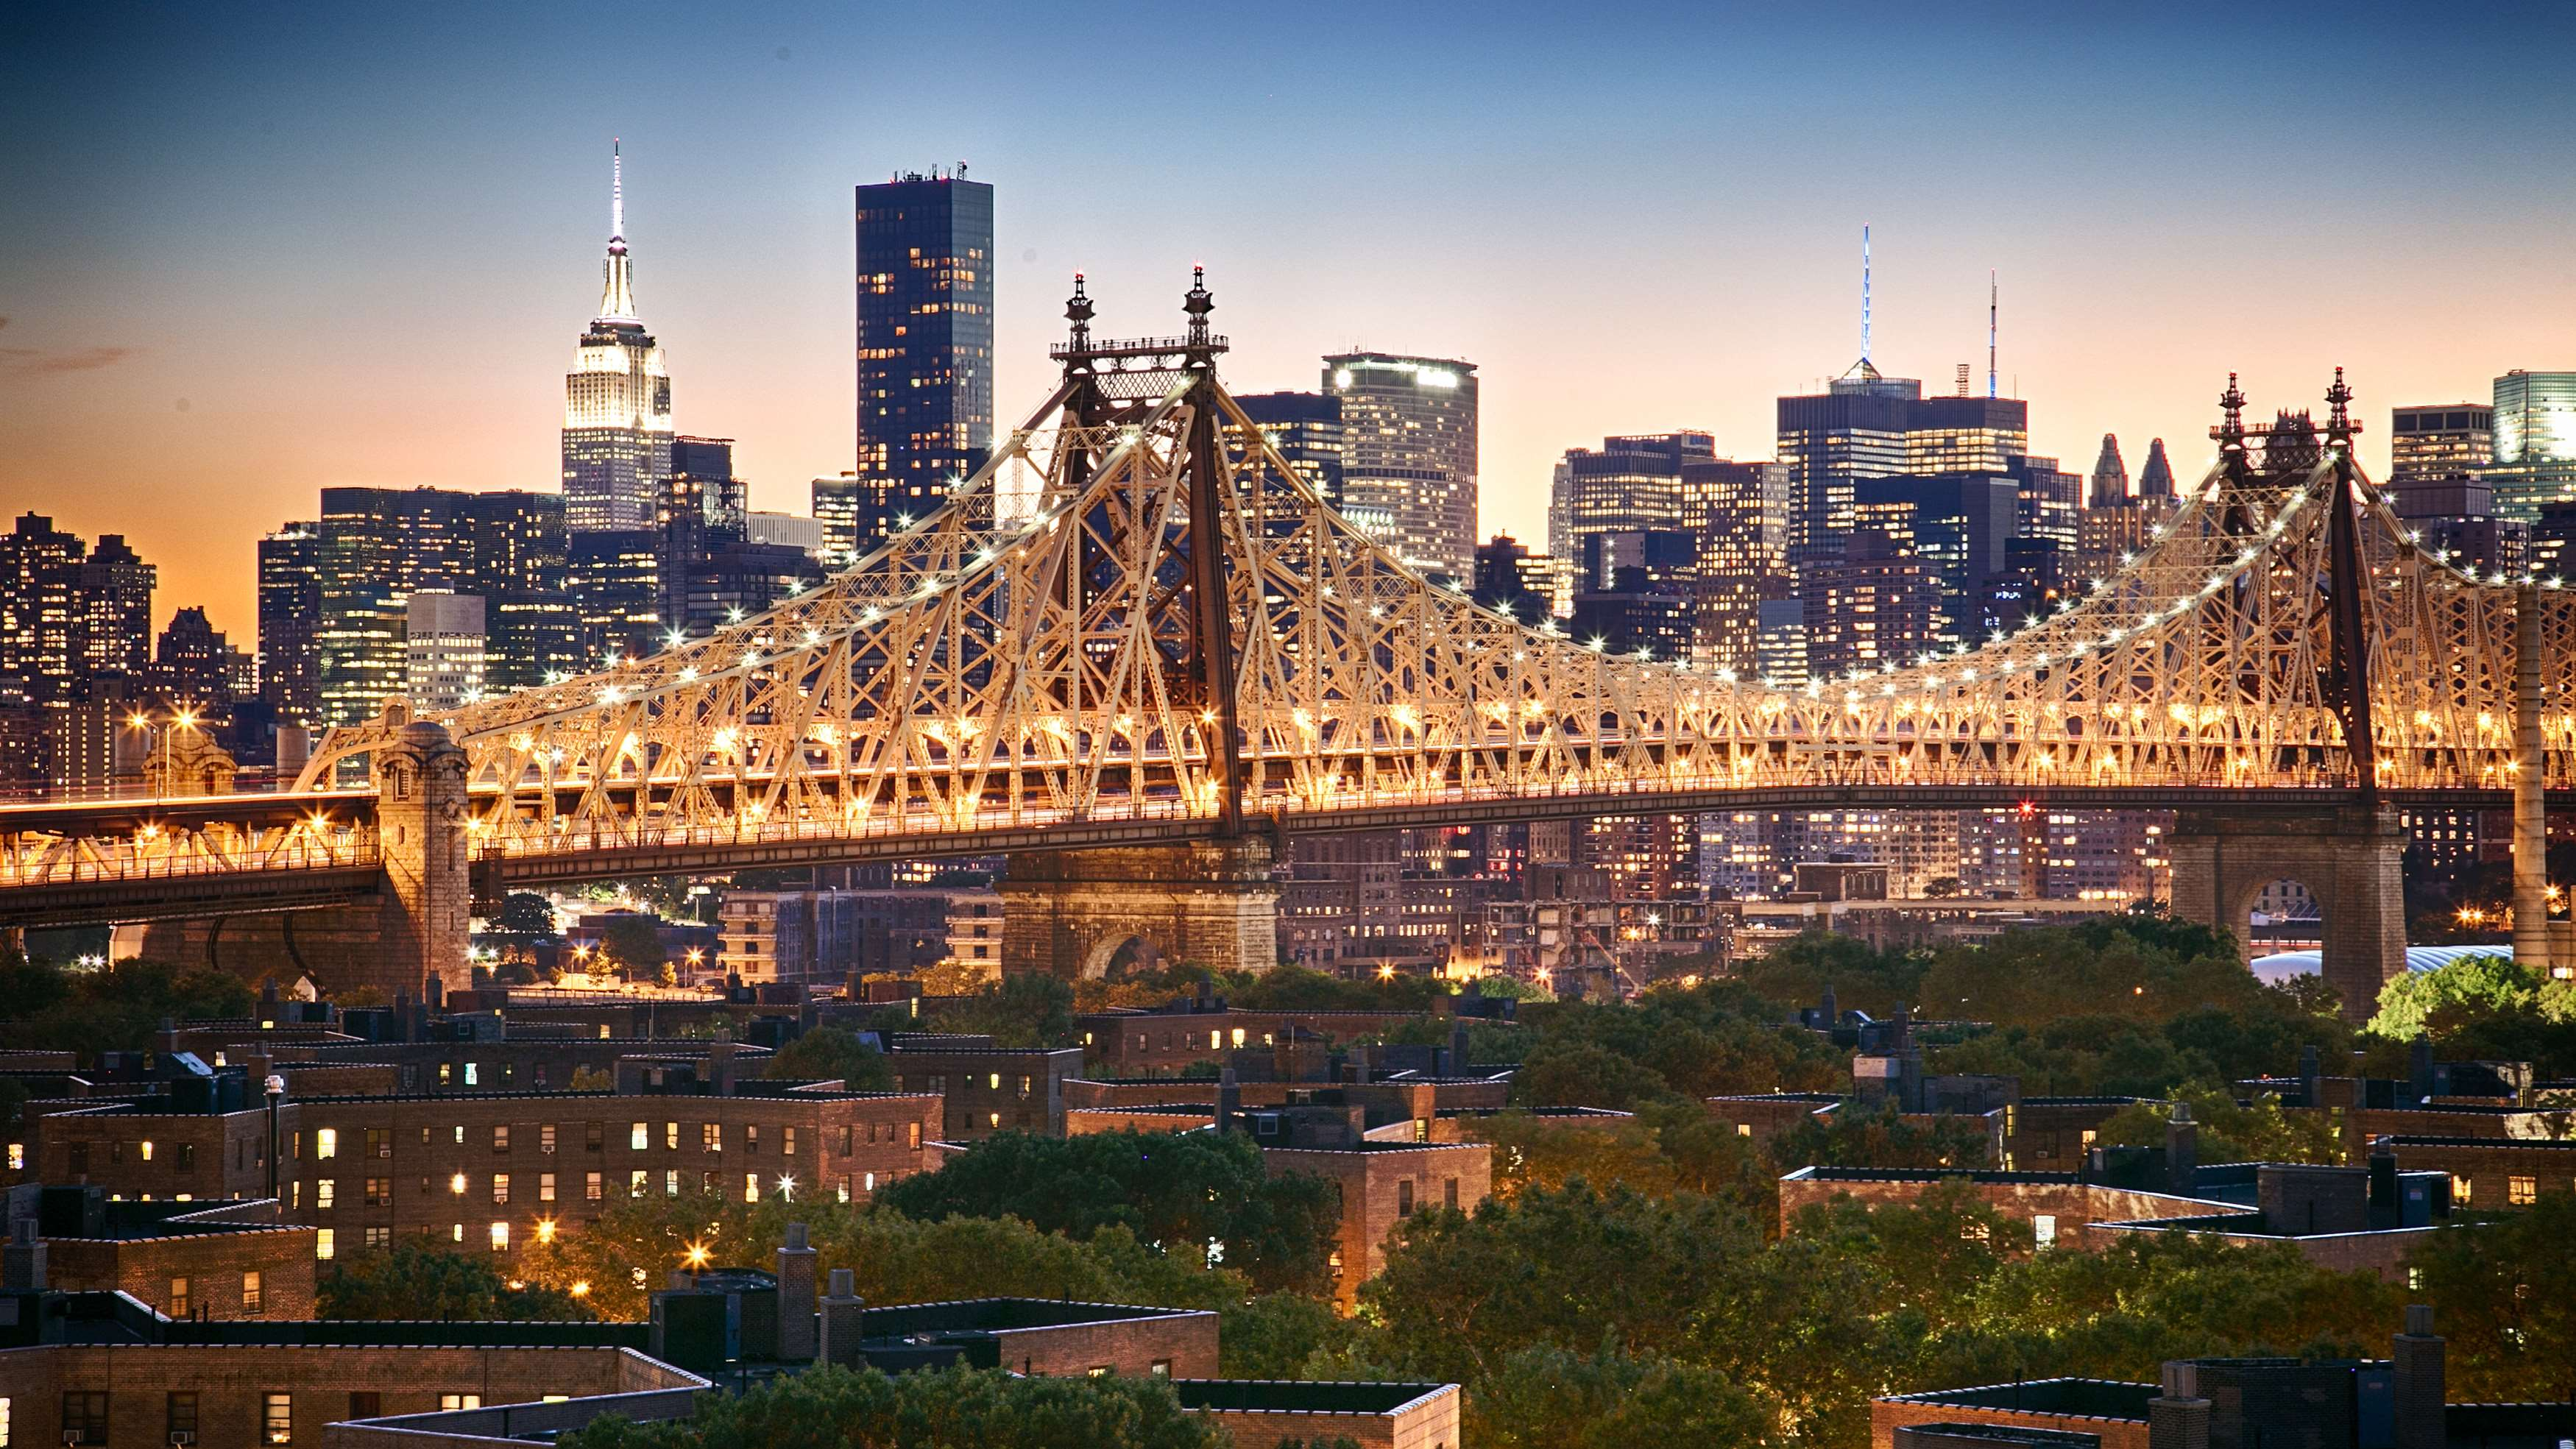 Airport Hotels JFK - Find hotels near JFK Airport, New York!